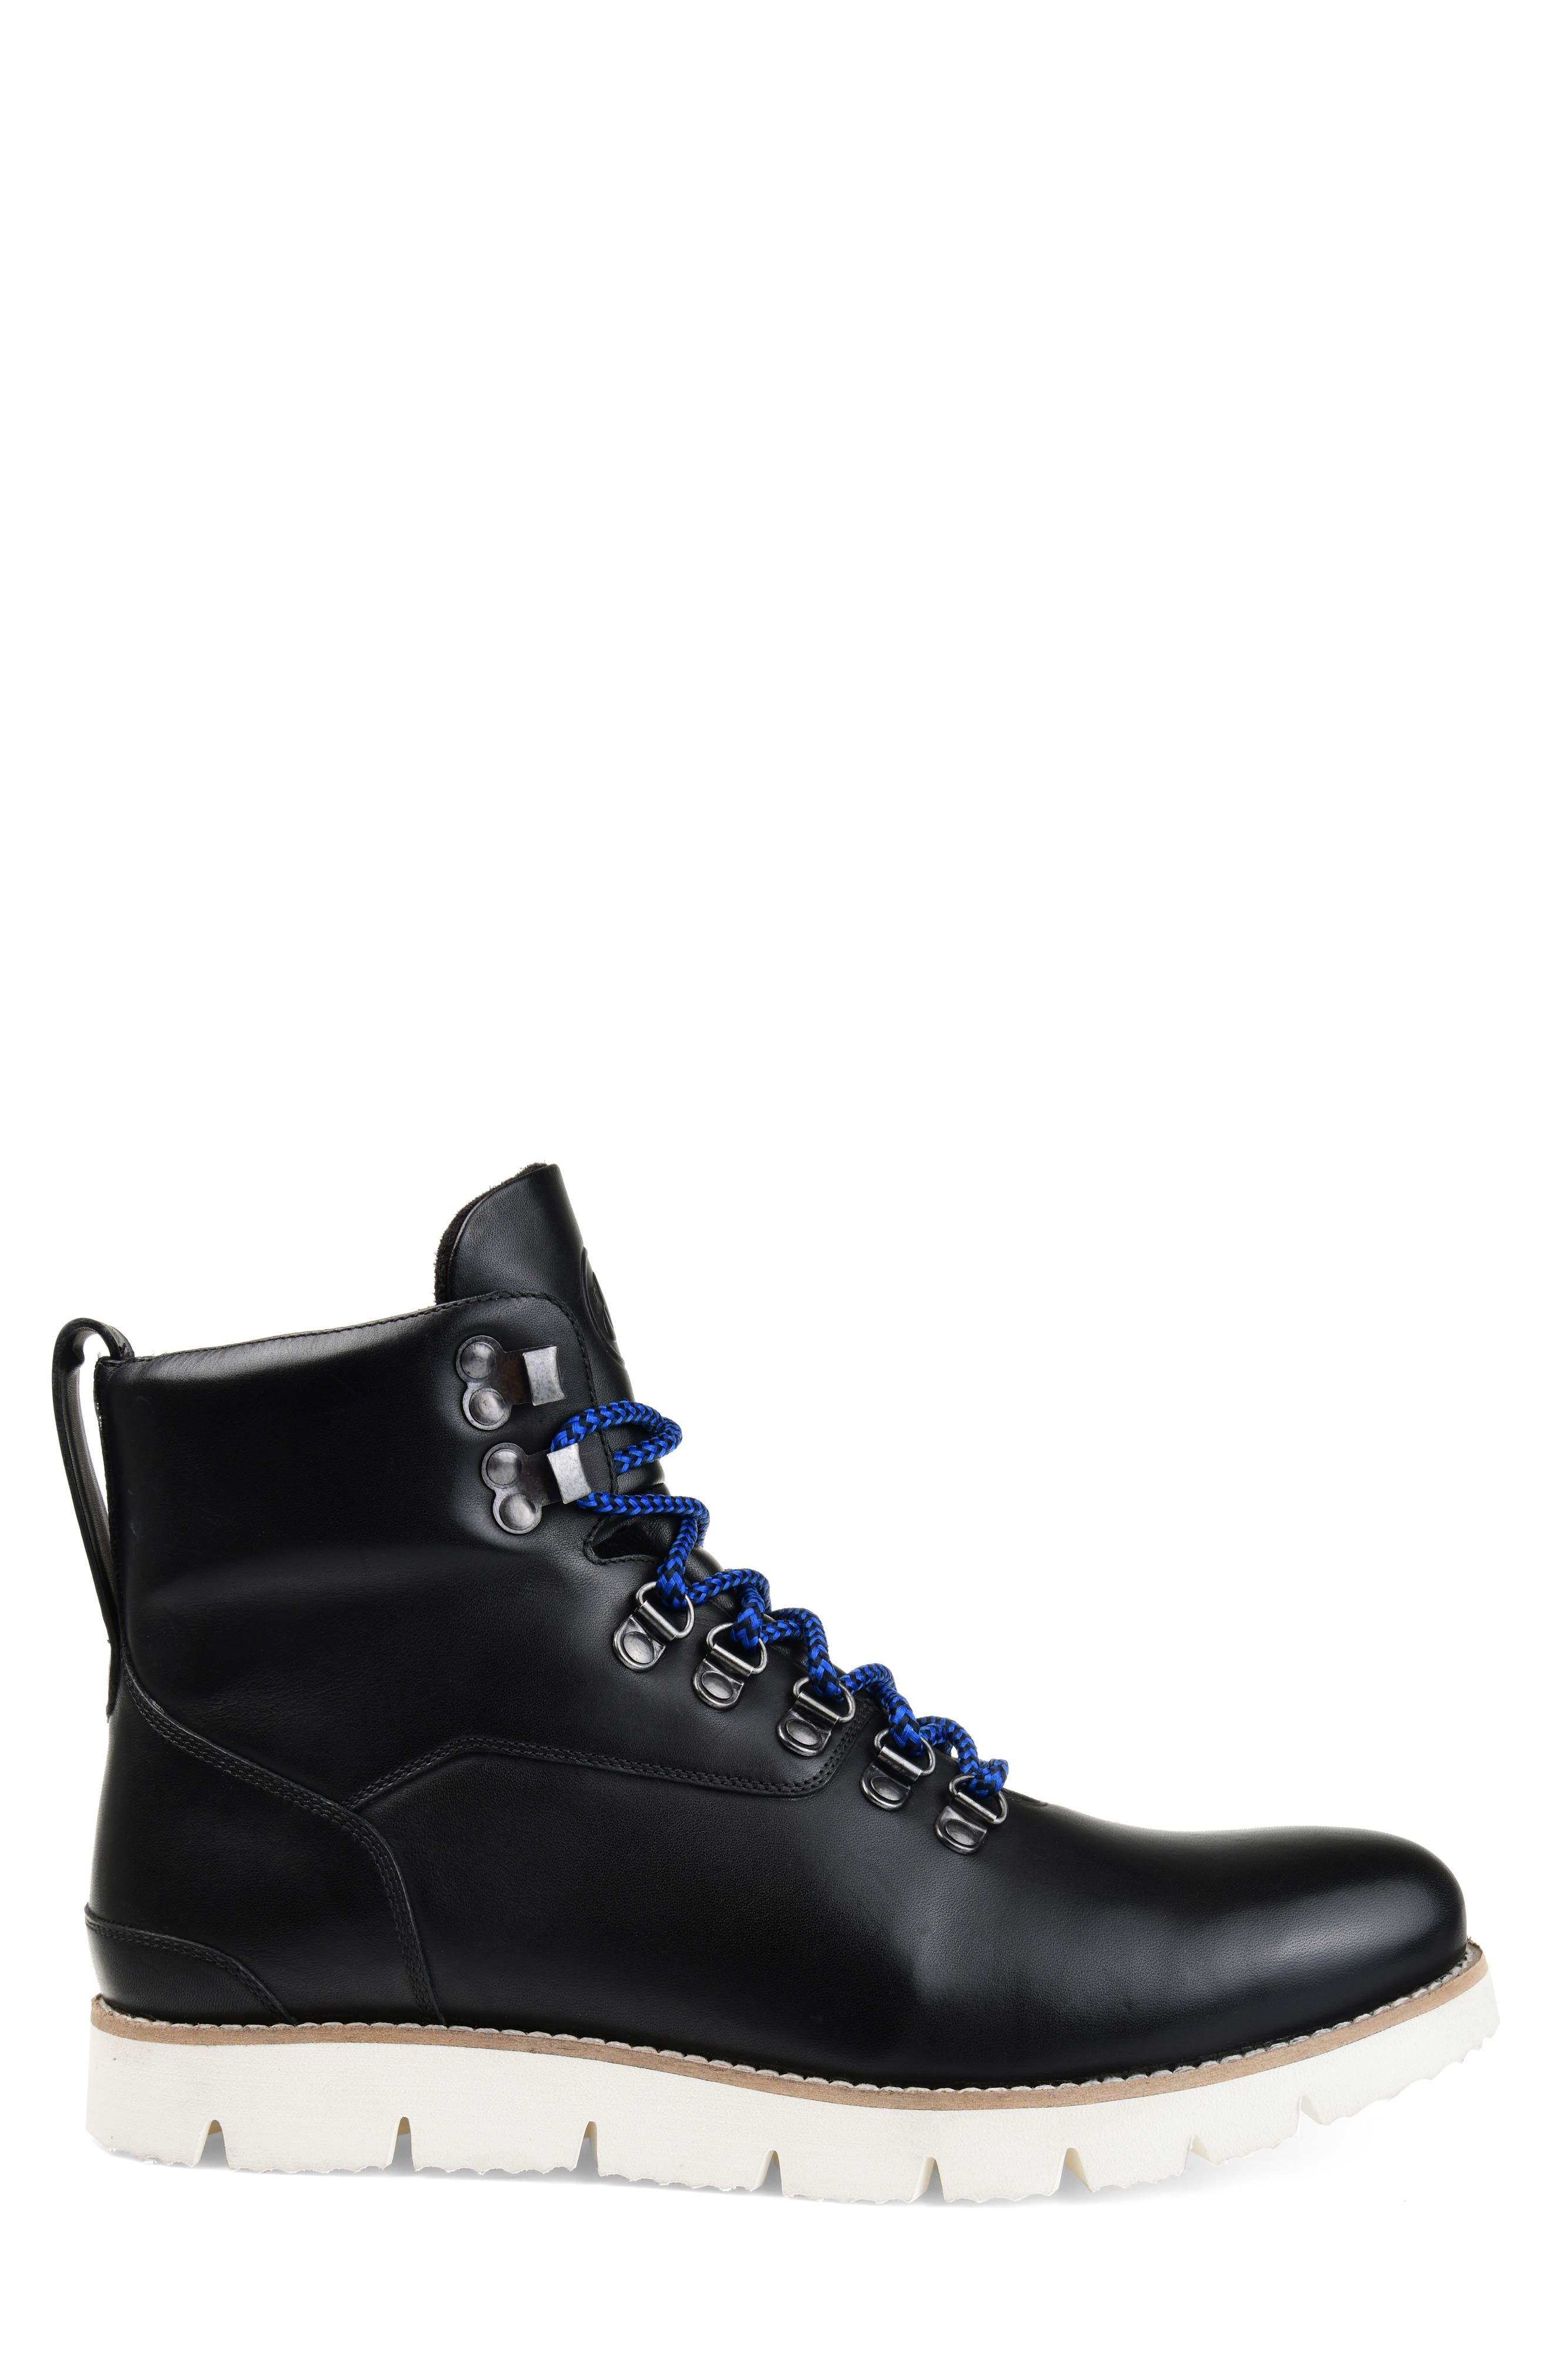 THOMAS AND VINE, Siege Boot, Alternate thumbnail 3, color, BLACK LEATHER